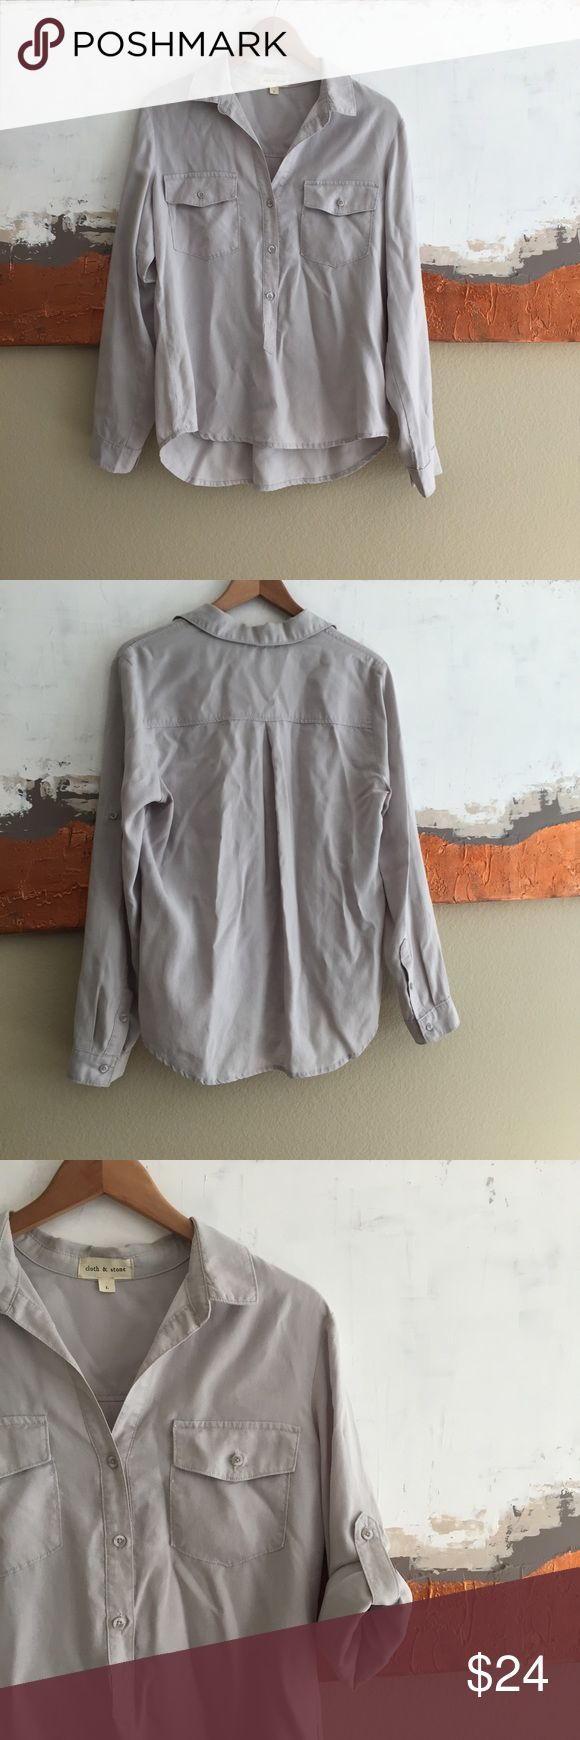 Anthro Cloth & Stone gray button down shirt Anthropologie brand Cloth & Stone light gray button down shirt. Long sleeved shirt with collar and buttons halfway down front of shirt. Two buttoned breast pockets. Roll tab sleeves can be worn long or cuffed. High-low hem, casual oversized fit. Size Large, in very good used condition. 100% tencel. Anthropologie Tops Button Down Shirts